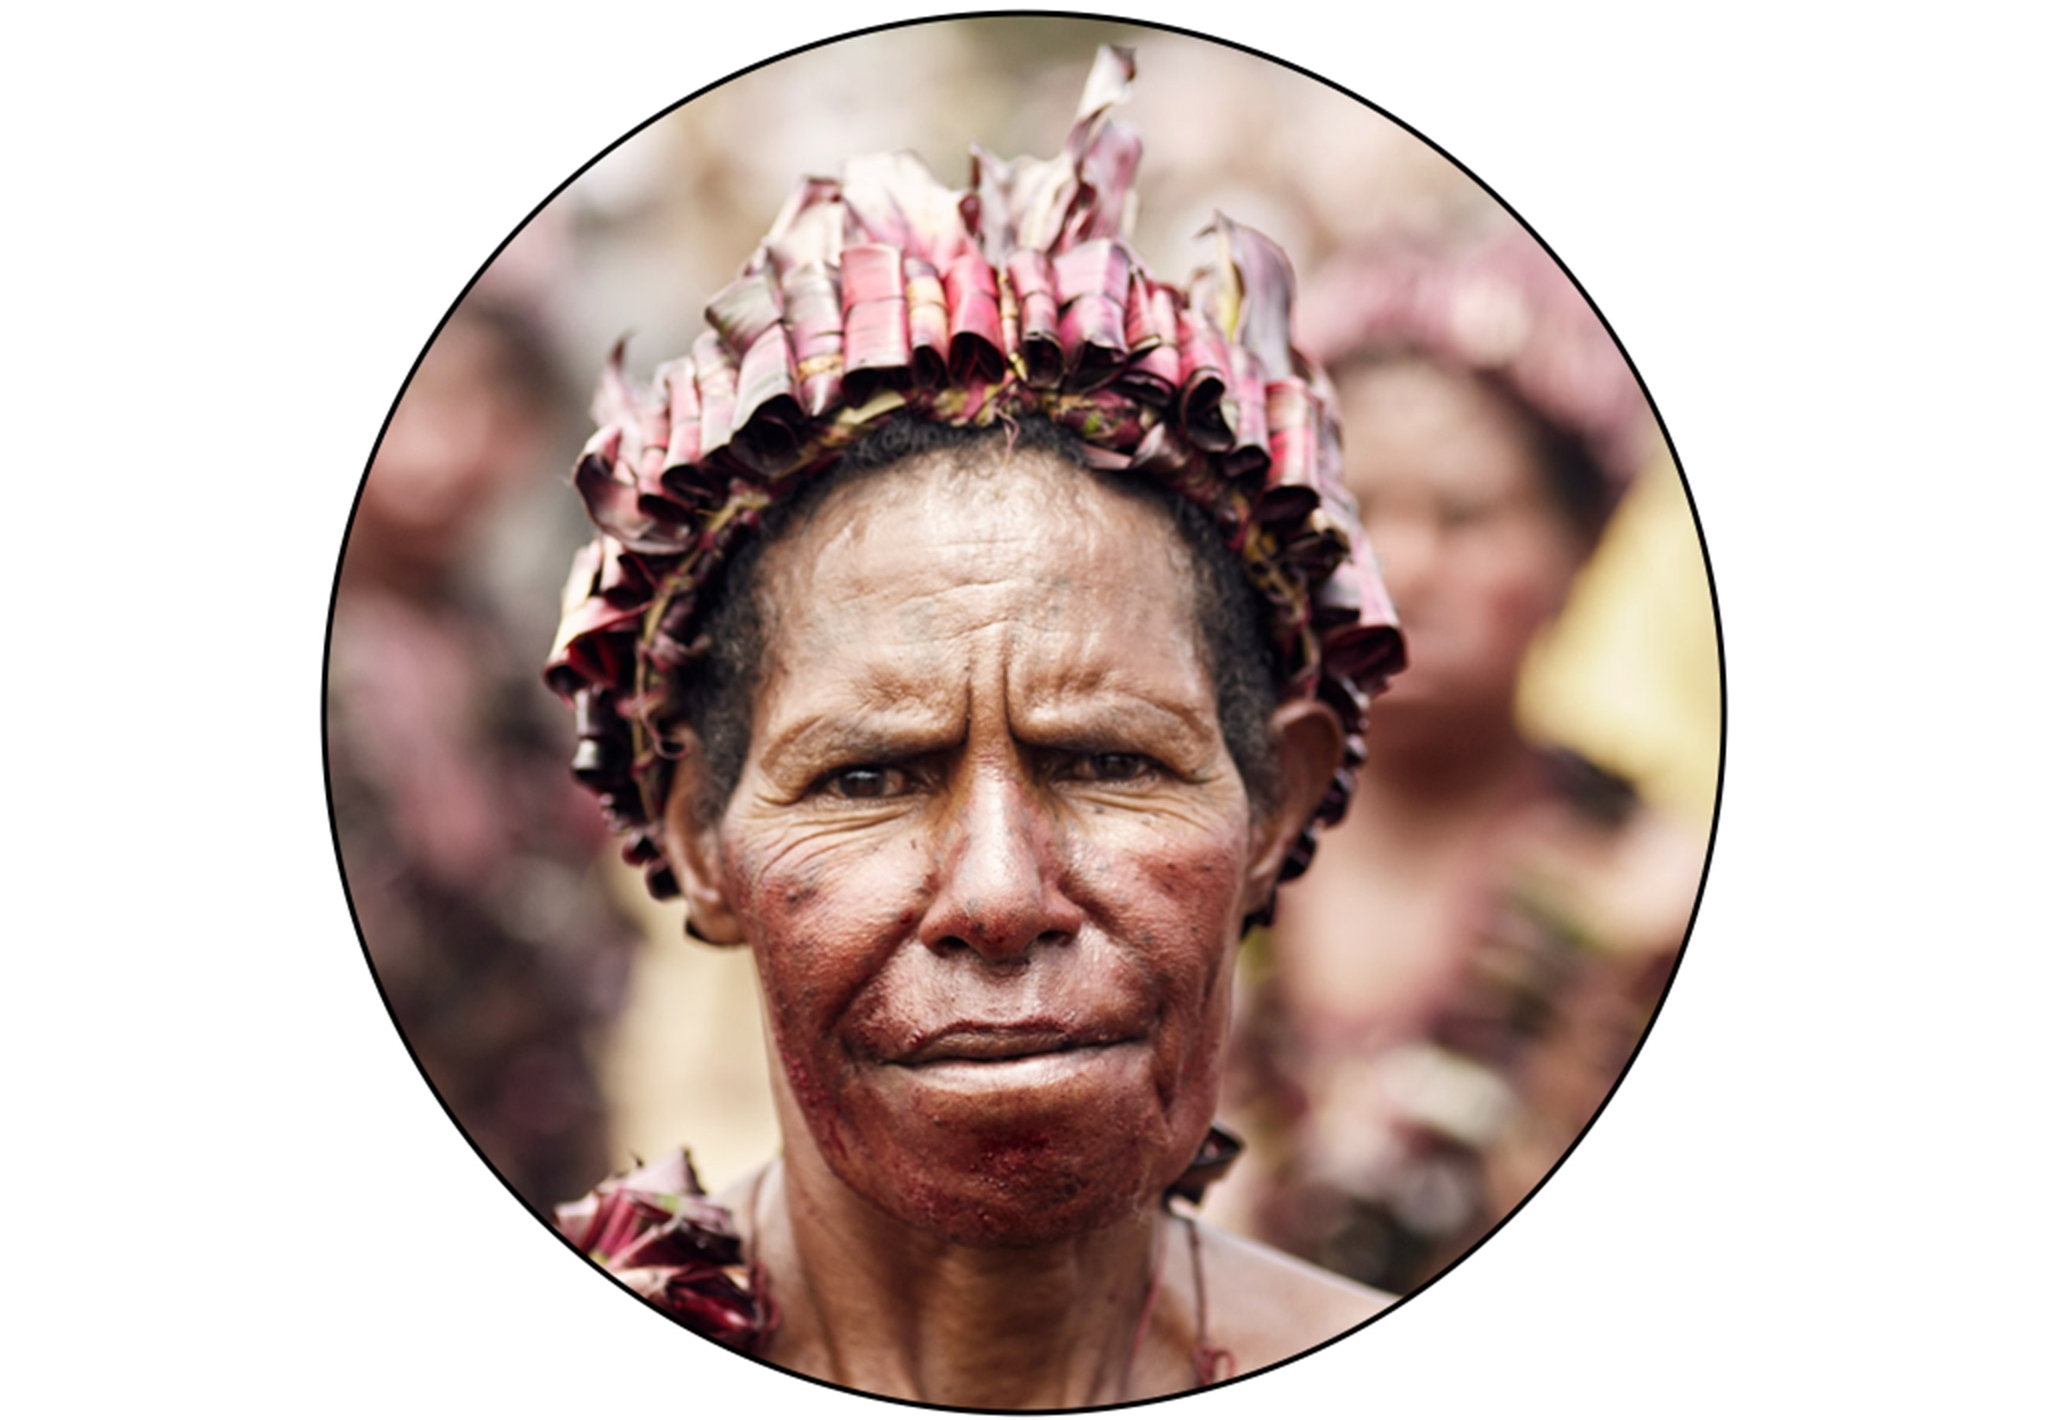 Elimbari_tribe_environmental_portrait_1_woman